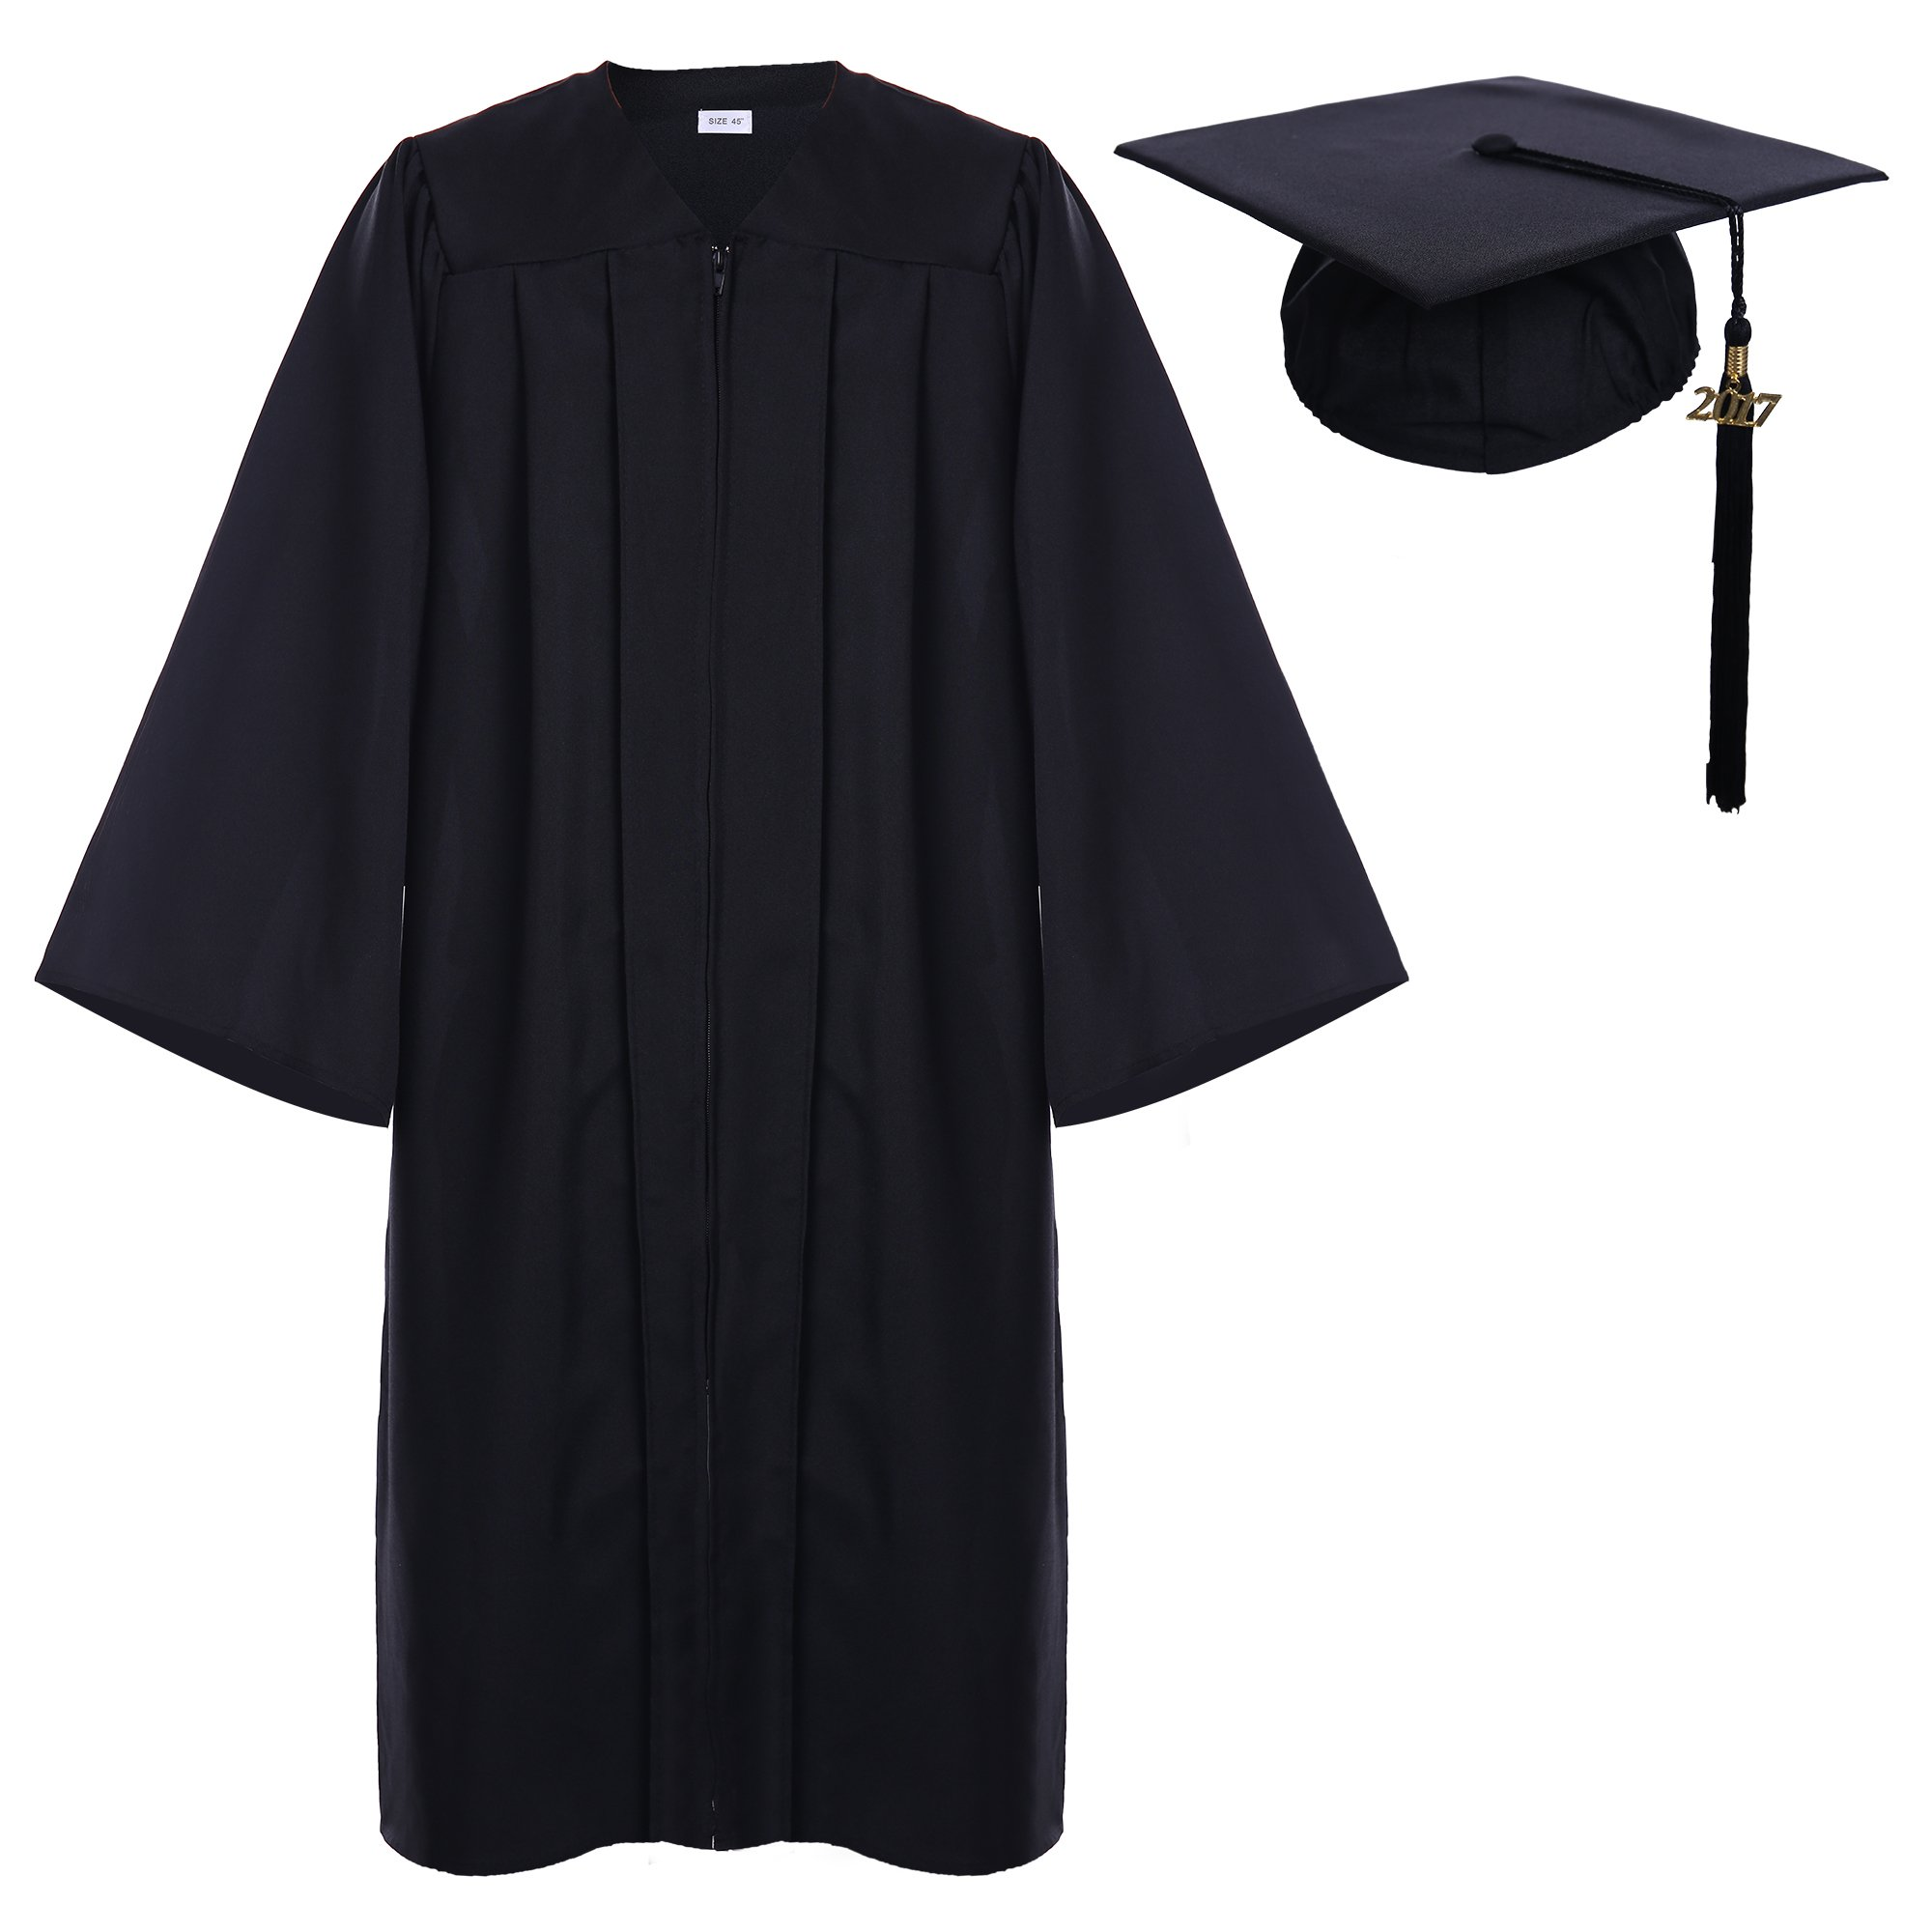 Cheap Cap And Gown And Tassel, find Cap And Gown And Tassel deals on ...